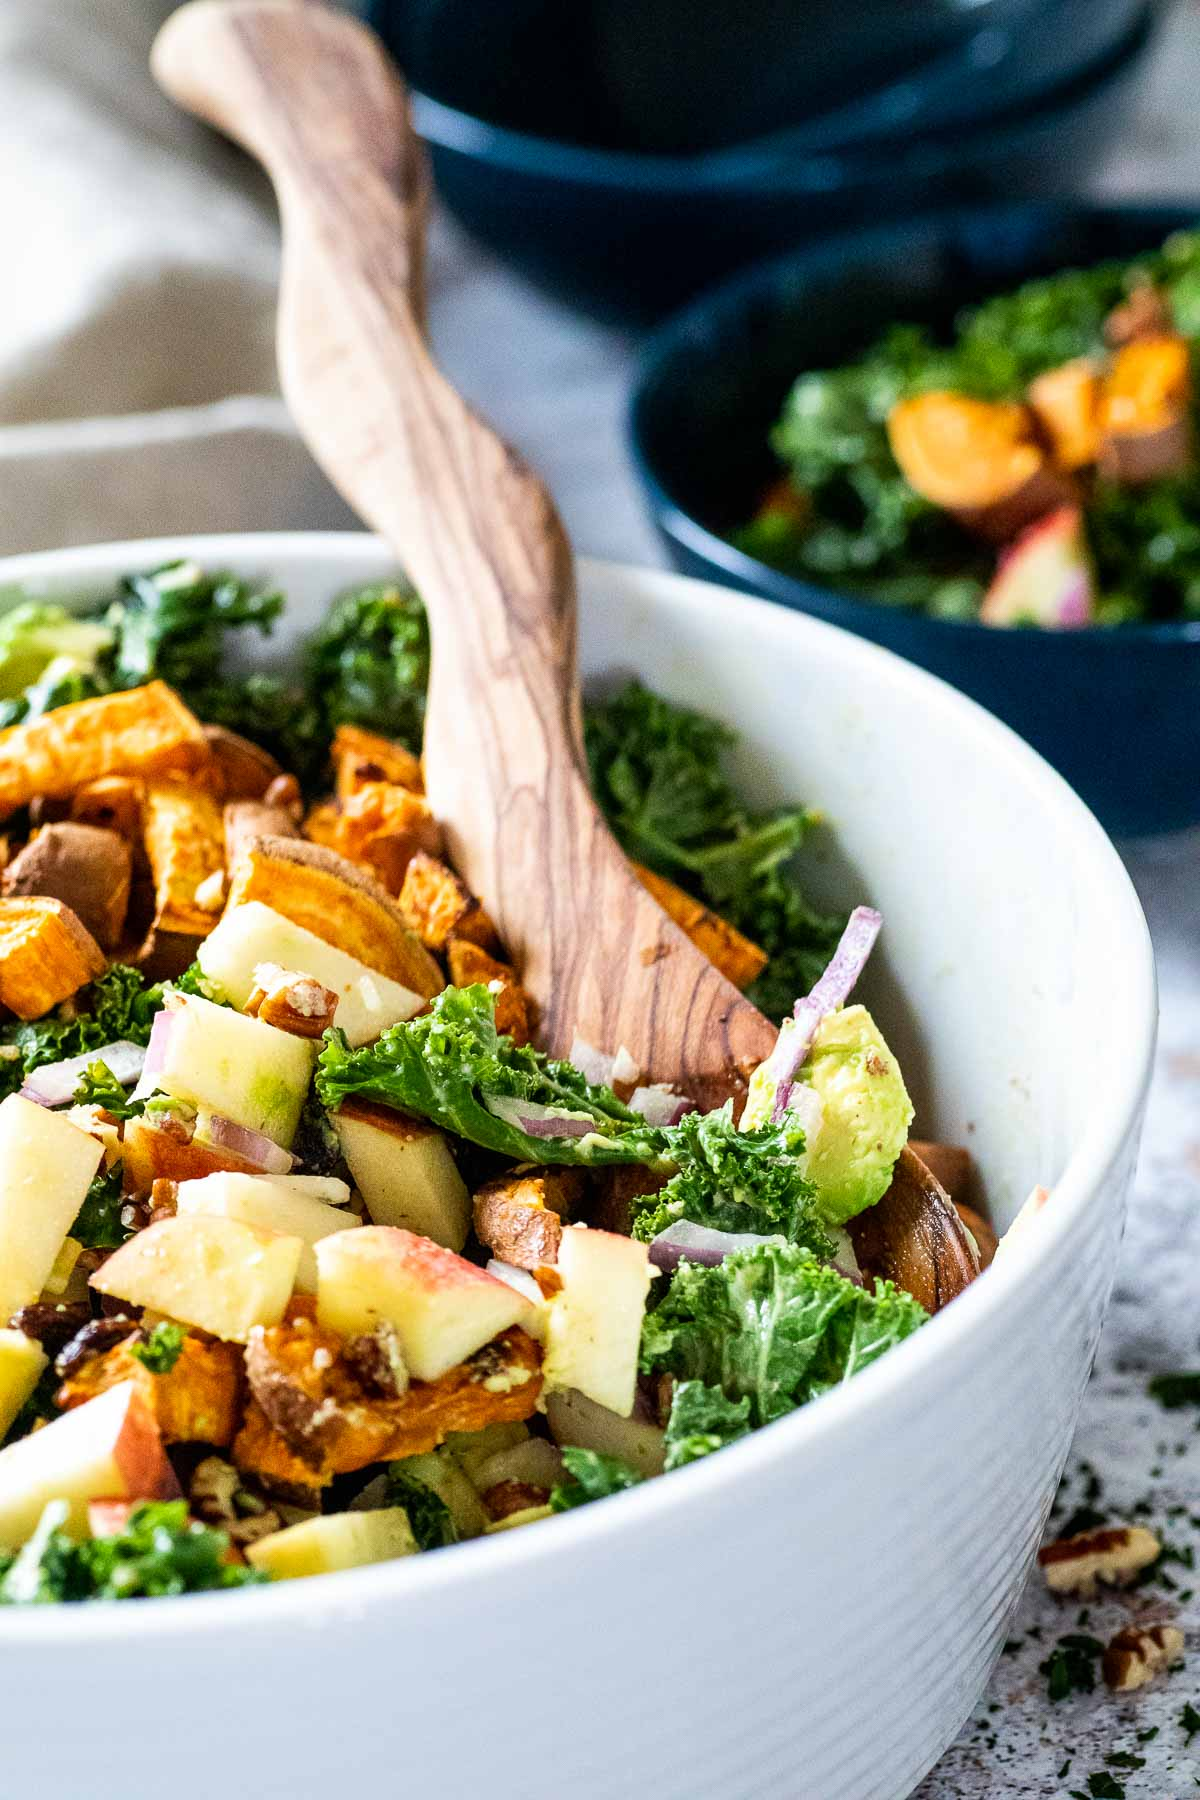 White bowl of kale salad with a serving spoon